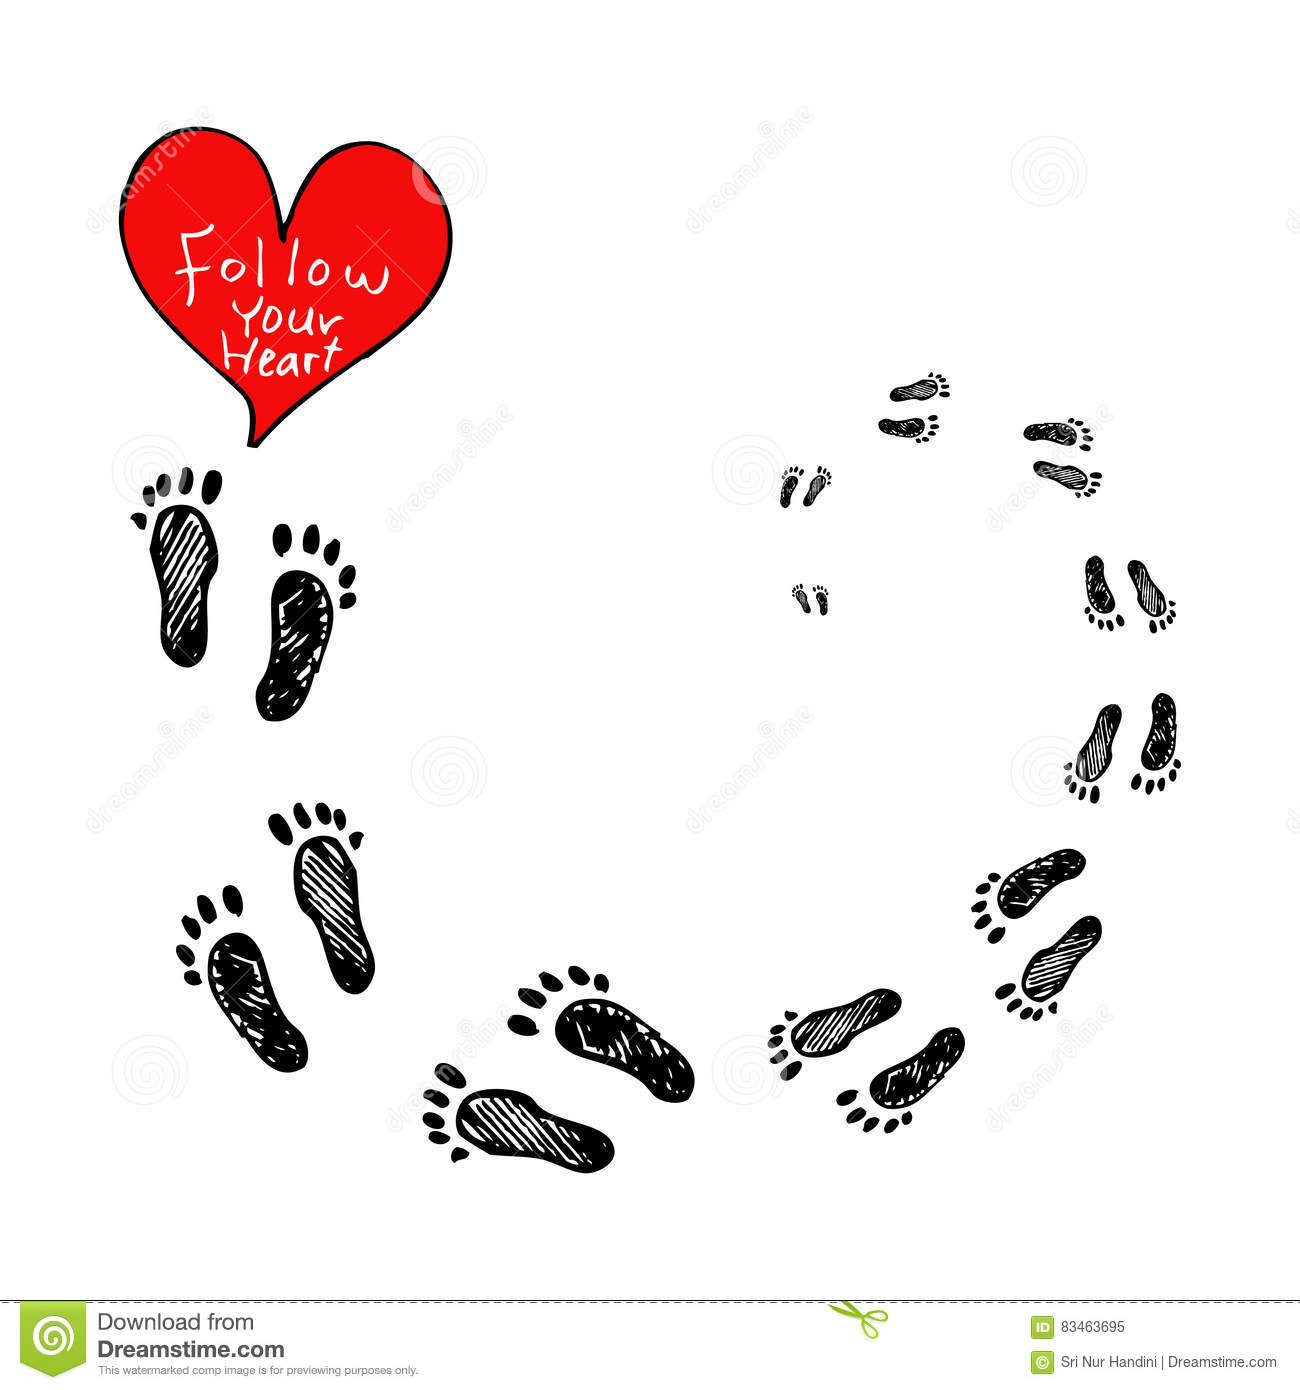 Follow Your Heart Lettering Follow Your Heart With Footprints Stock Vector